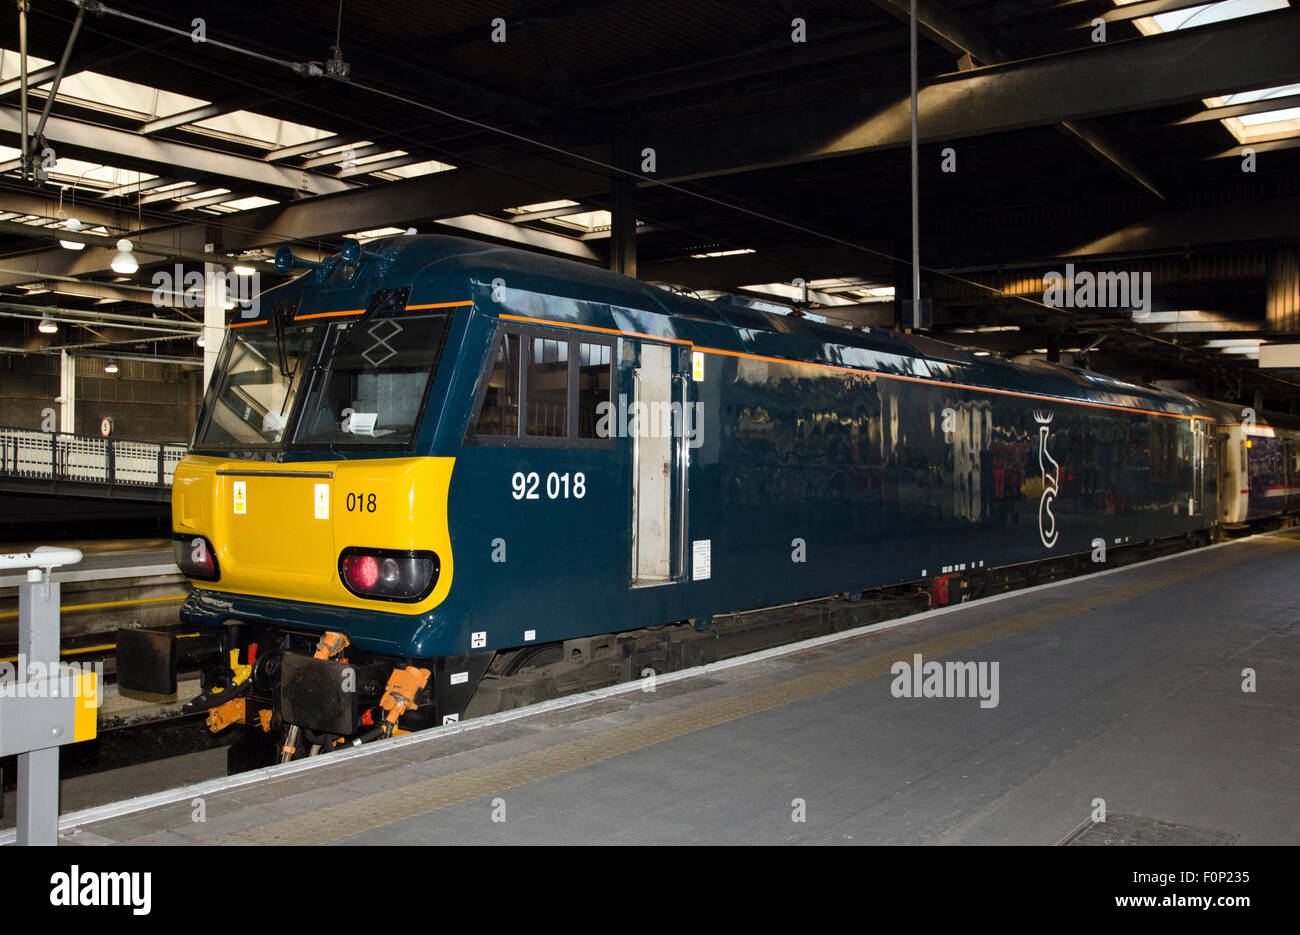 Serco Caledonian Sleeper Train Class 92 Electric